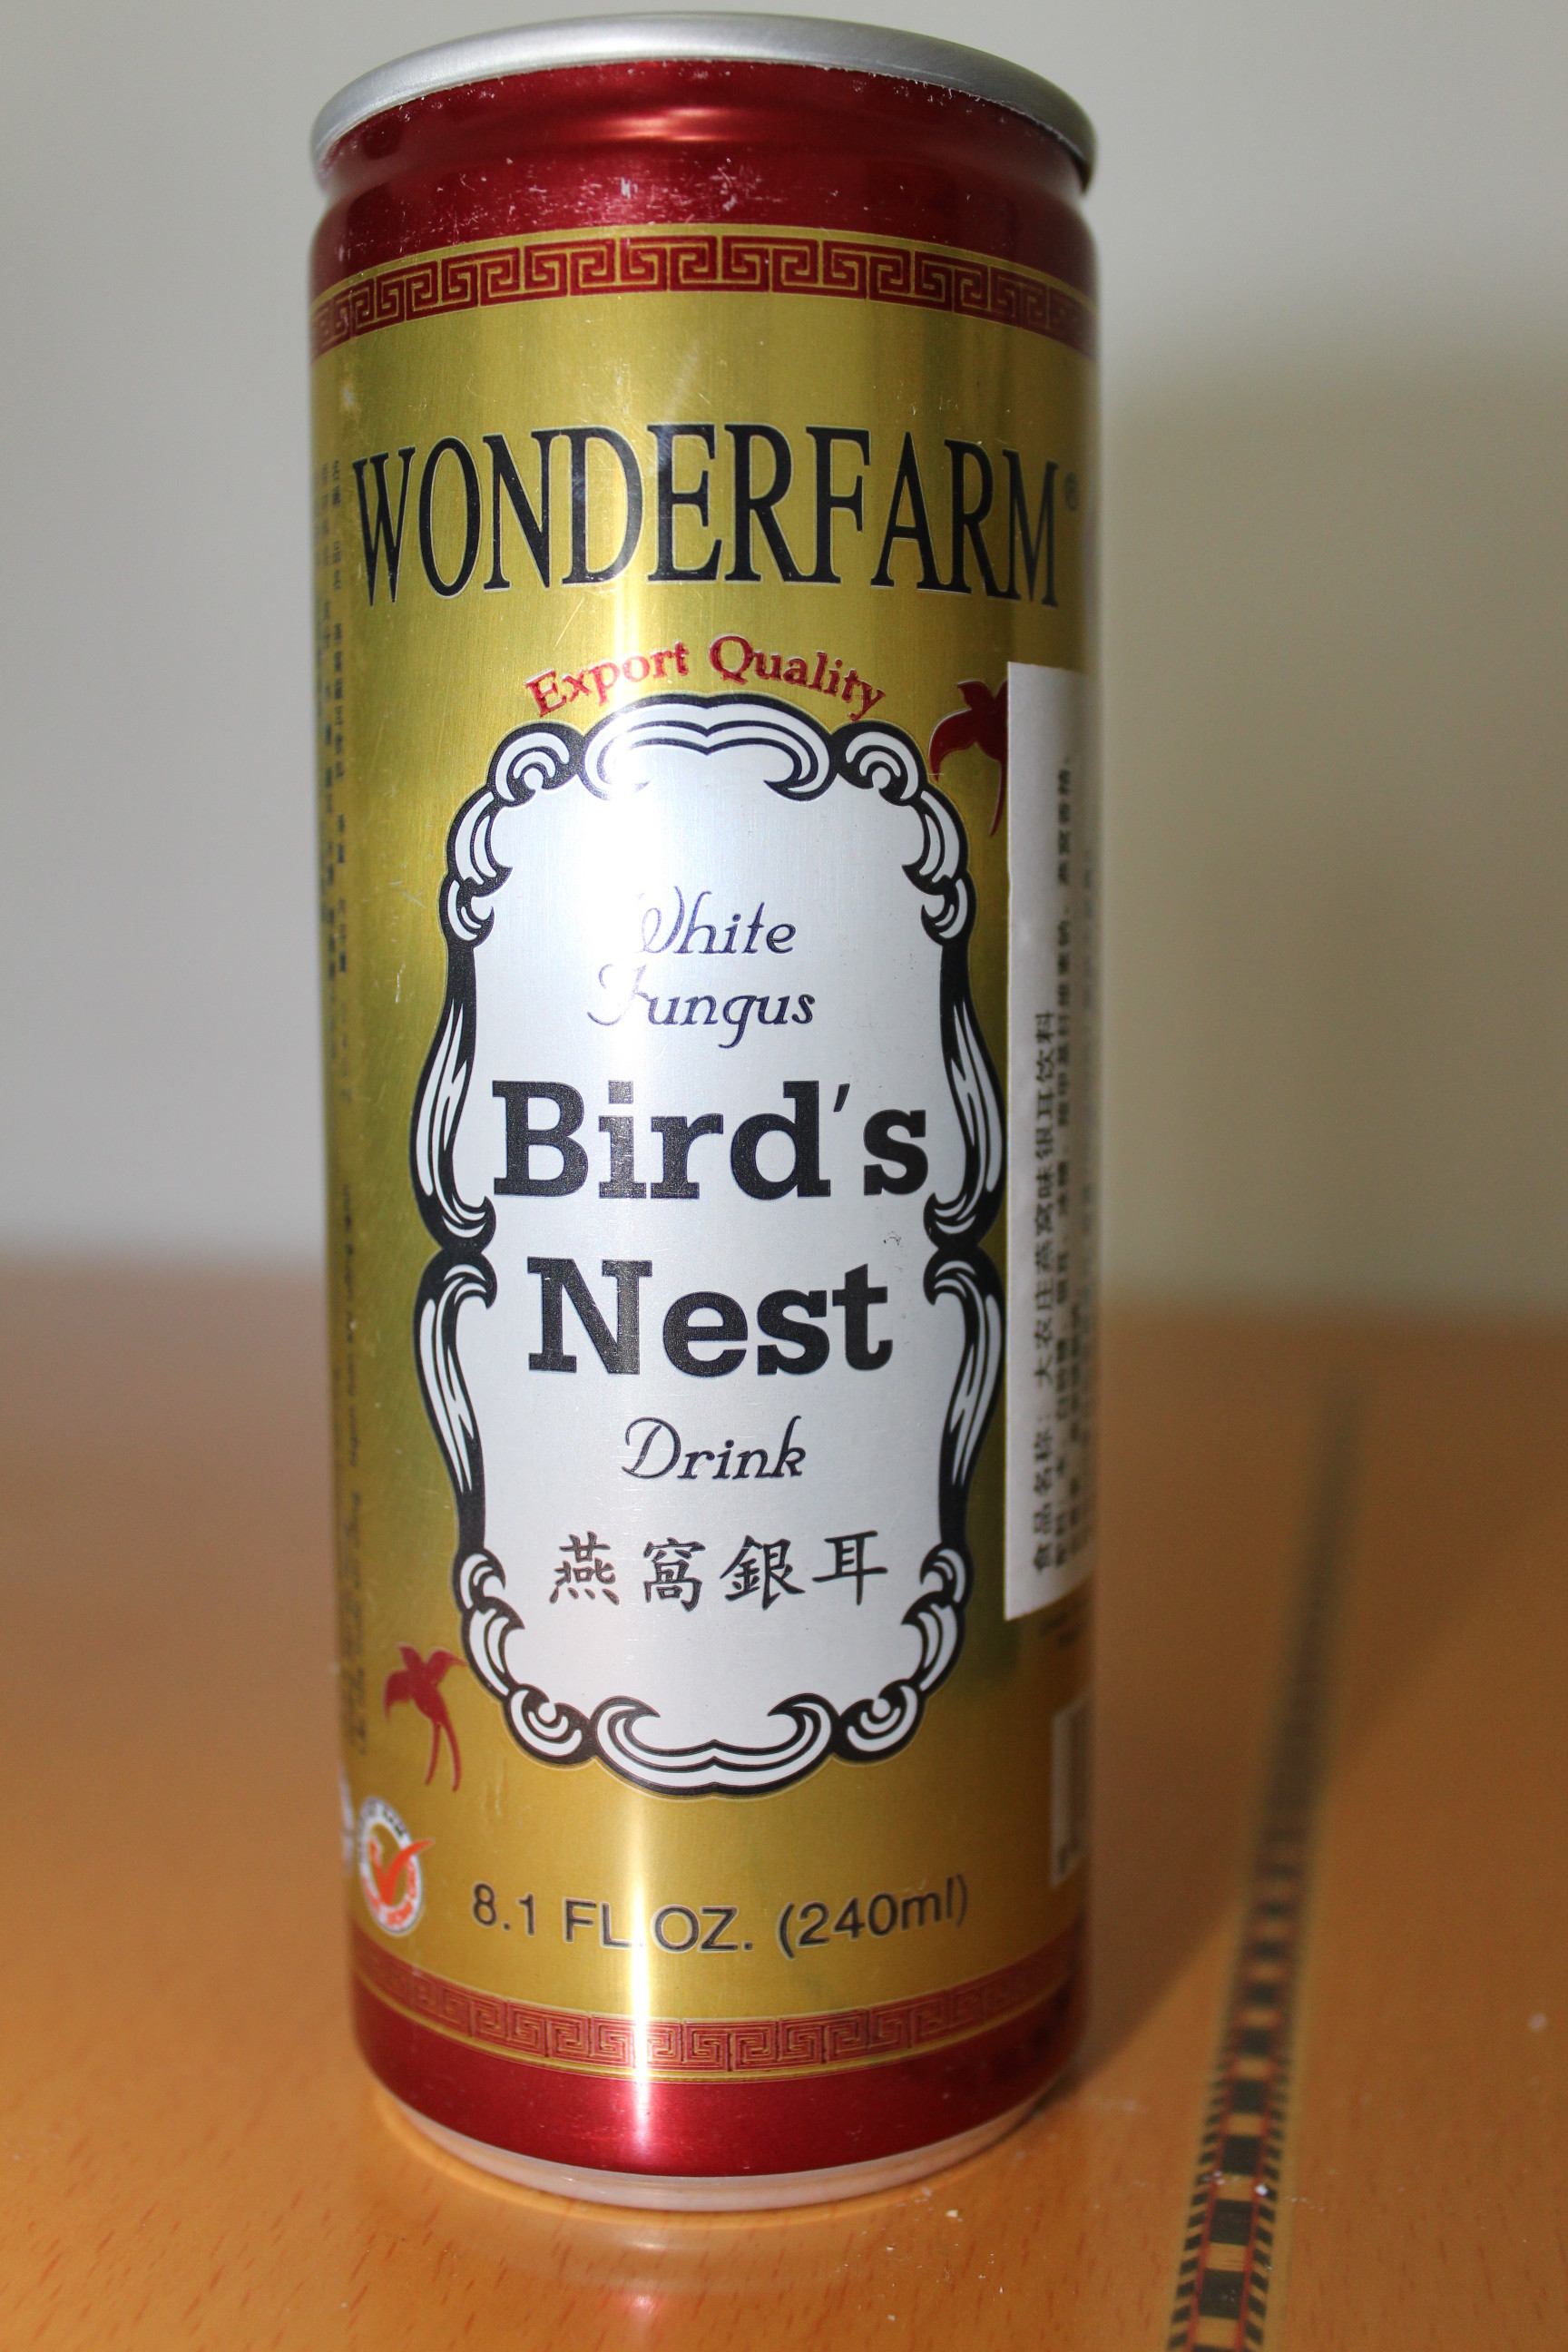 White Fungus Bird's Nest от Wonderfarm  еда, жесть, факты